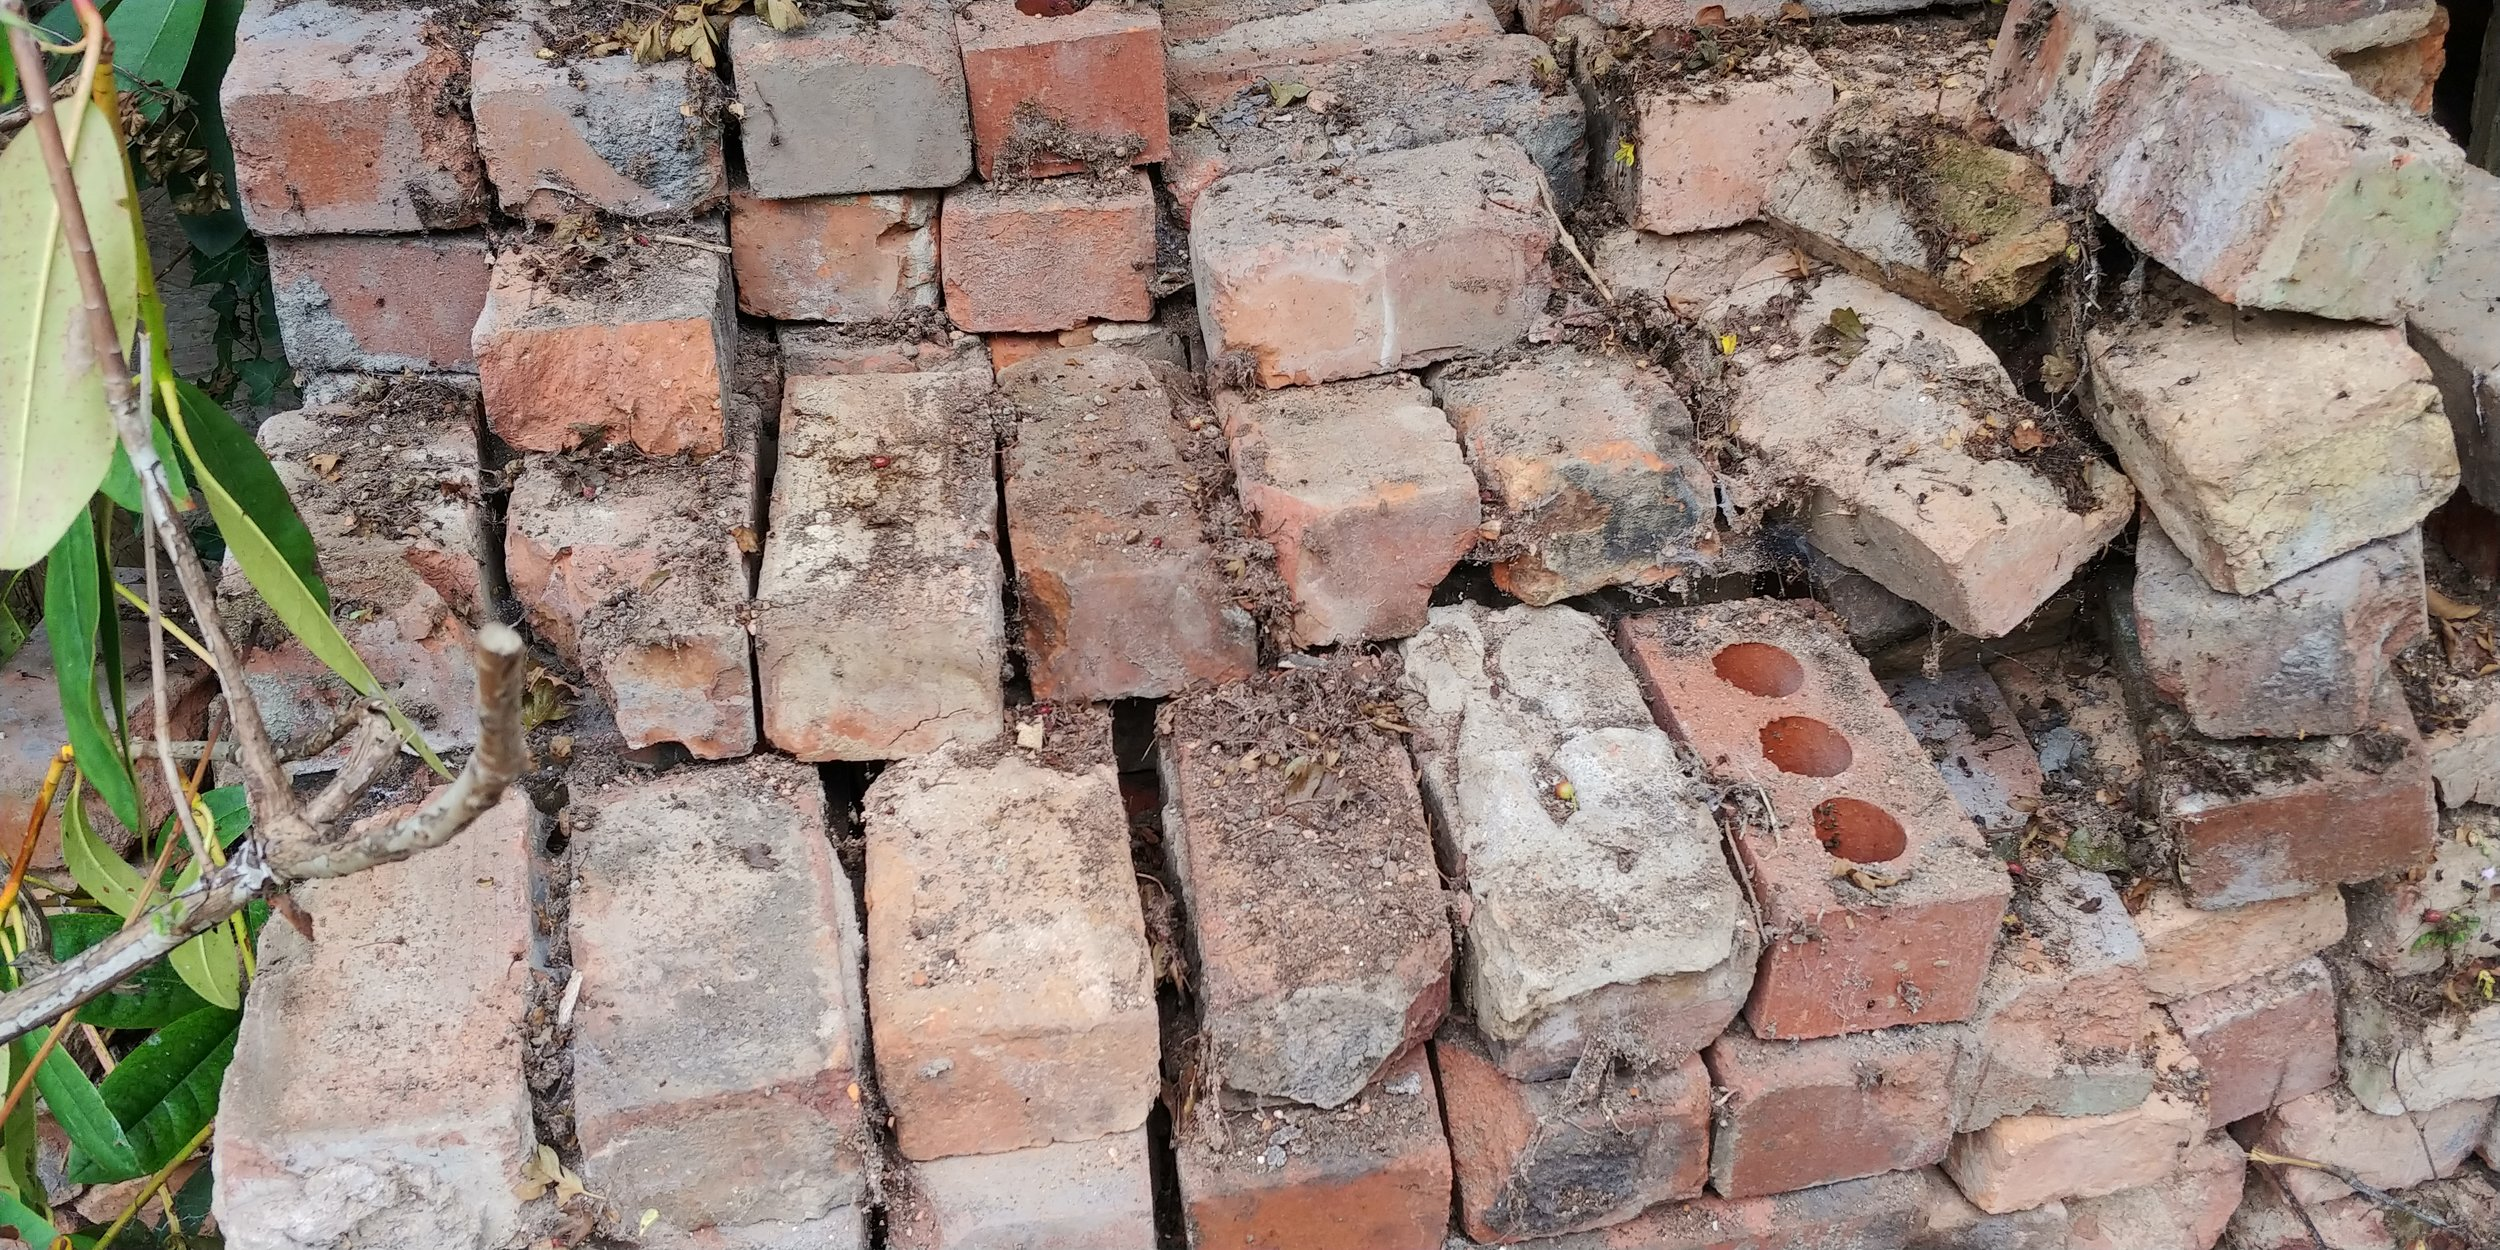 Close up of a typical brick pile. I don't even want to tell you how many massive spiders were lurking in here.